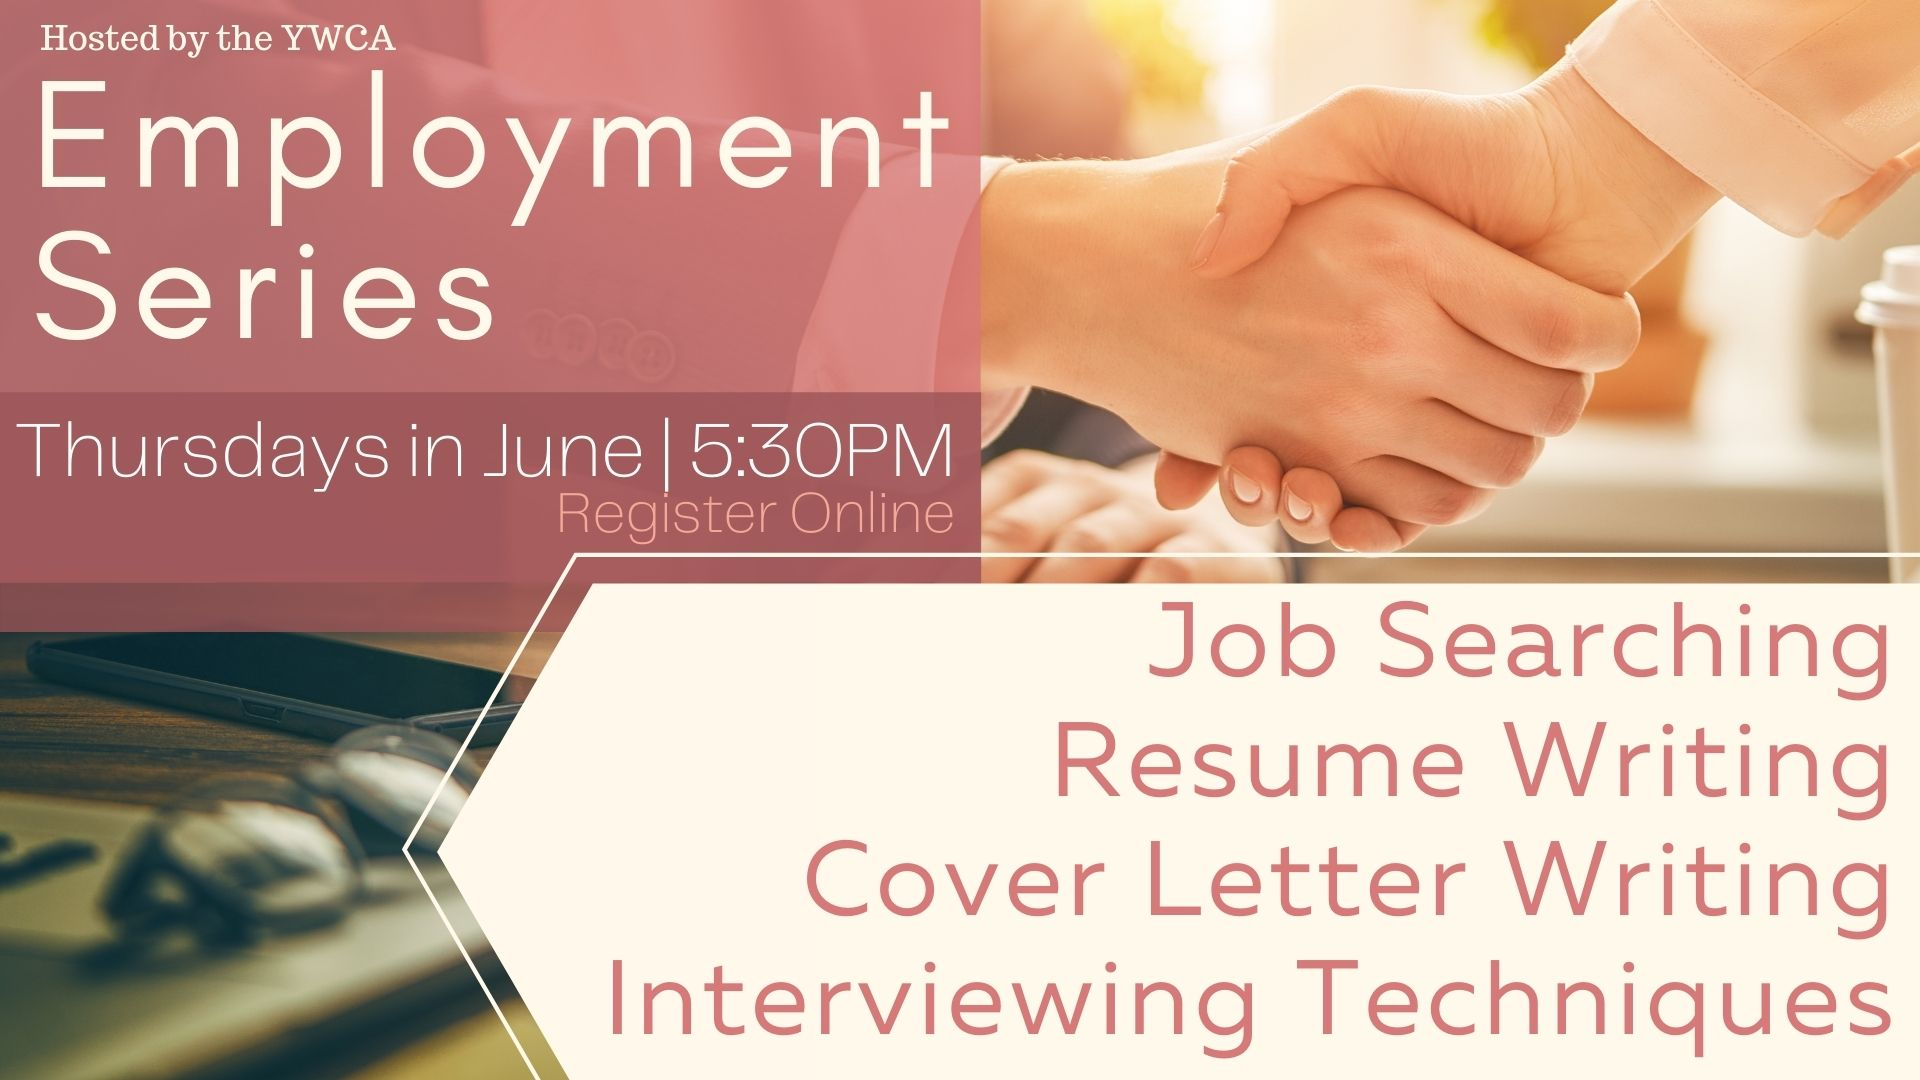 YWCA Employment Series: Interviewing Techniques